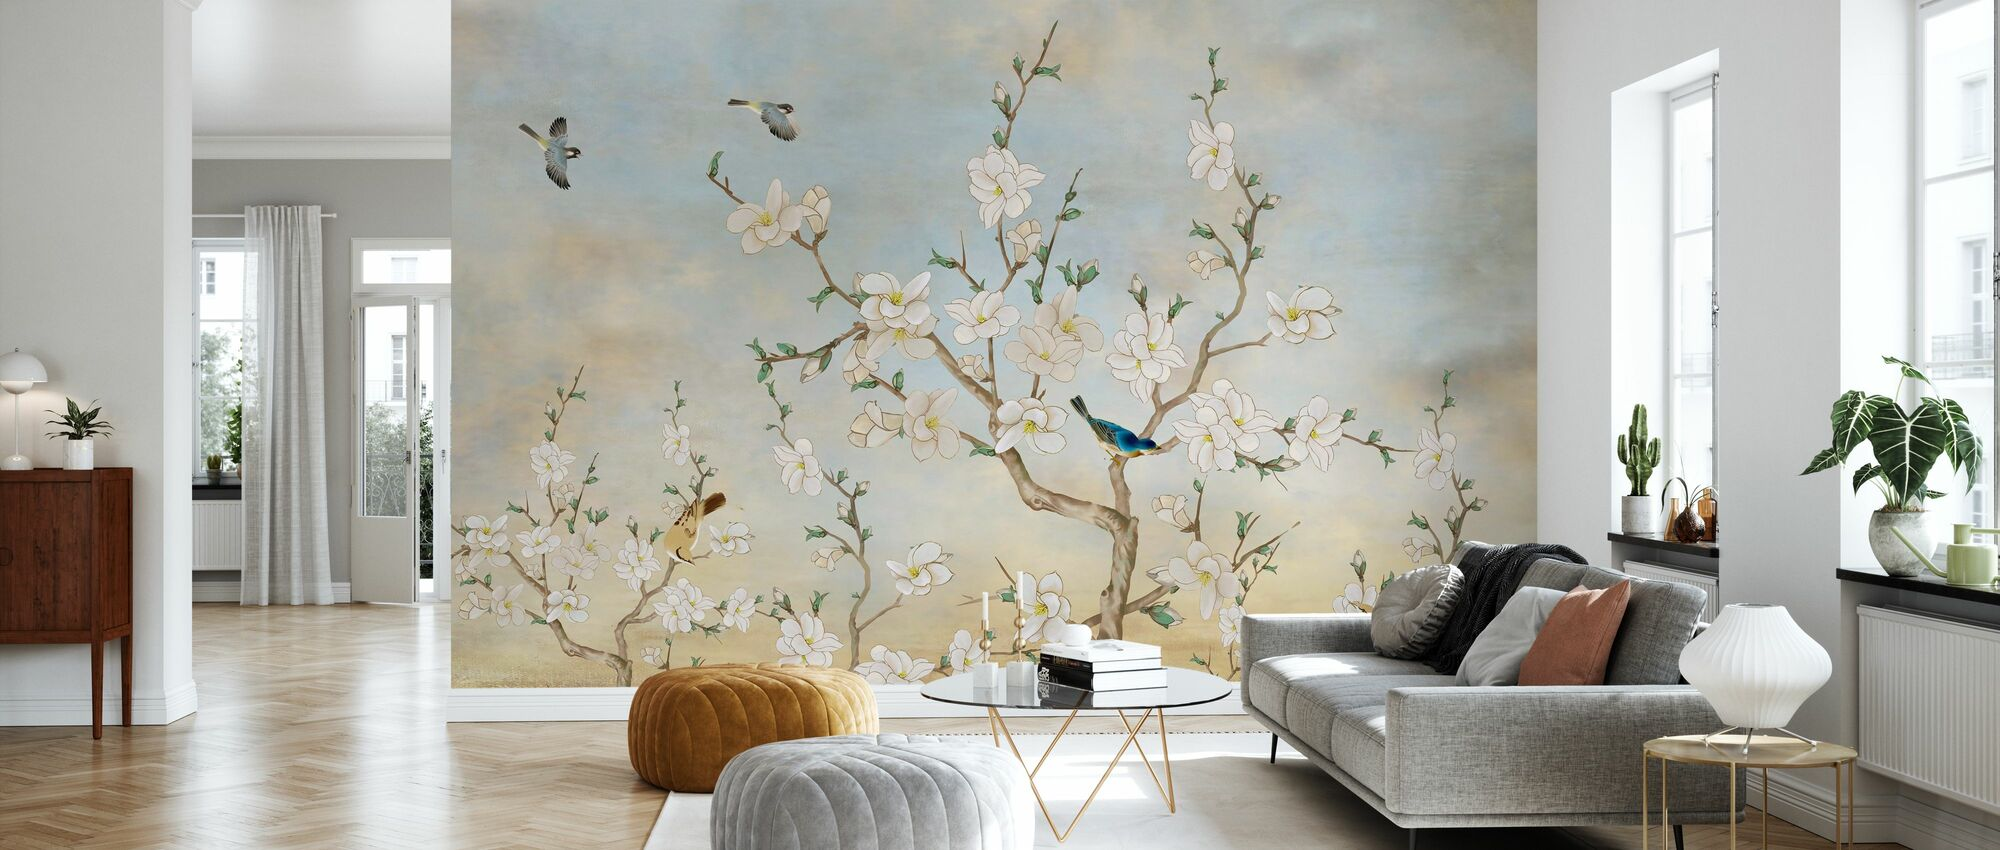 Birds Flora - Wallpaper - Living Room